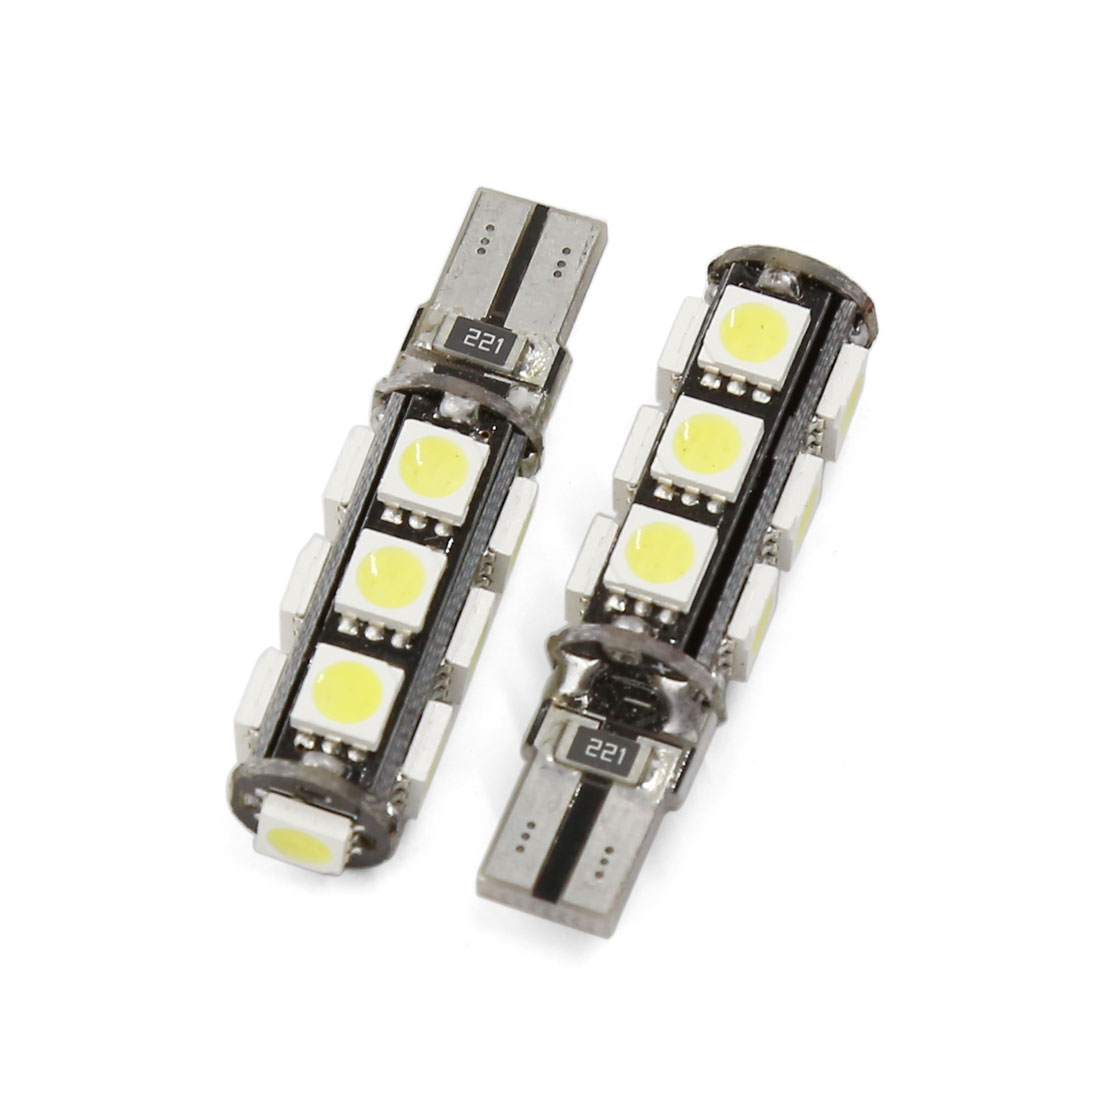 2 Pcs Canbus T10 W5W 5050 SMD 13 LED White Car Side Wedge Light Bulb Interior